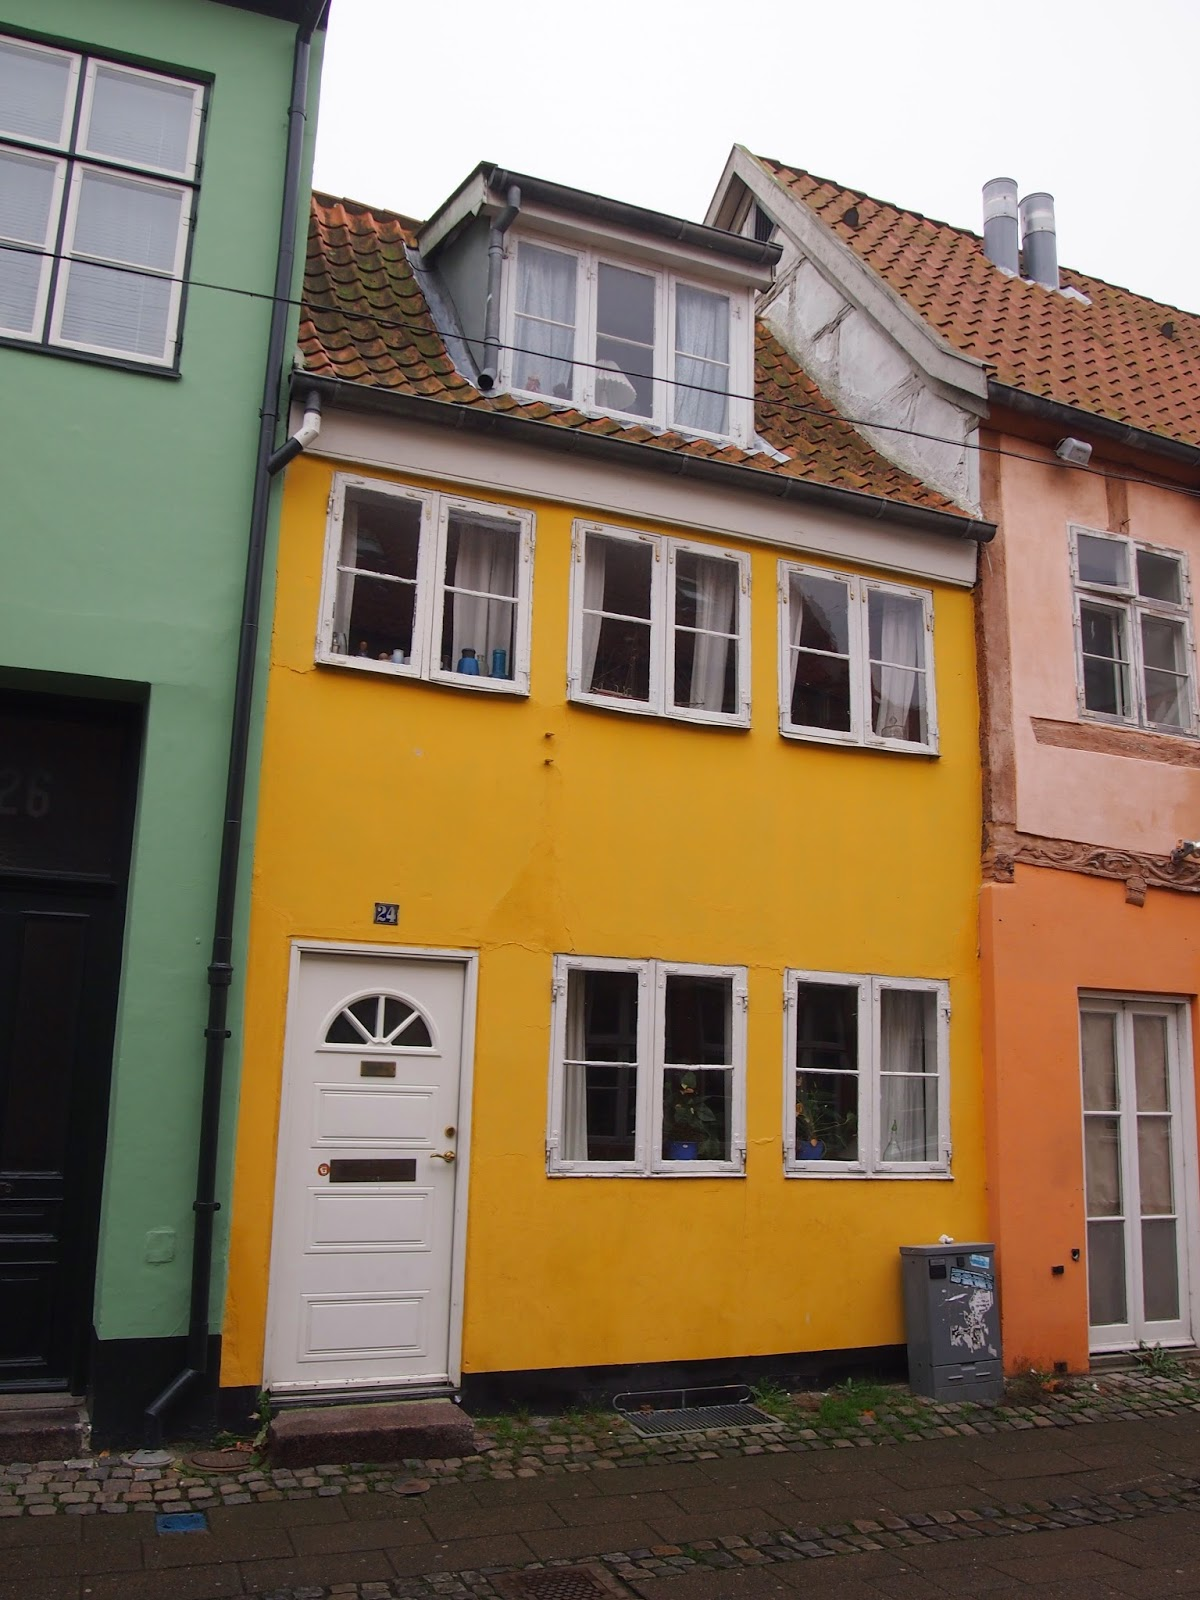 green, yellow, and orange homes by the seaside town of Helsingor